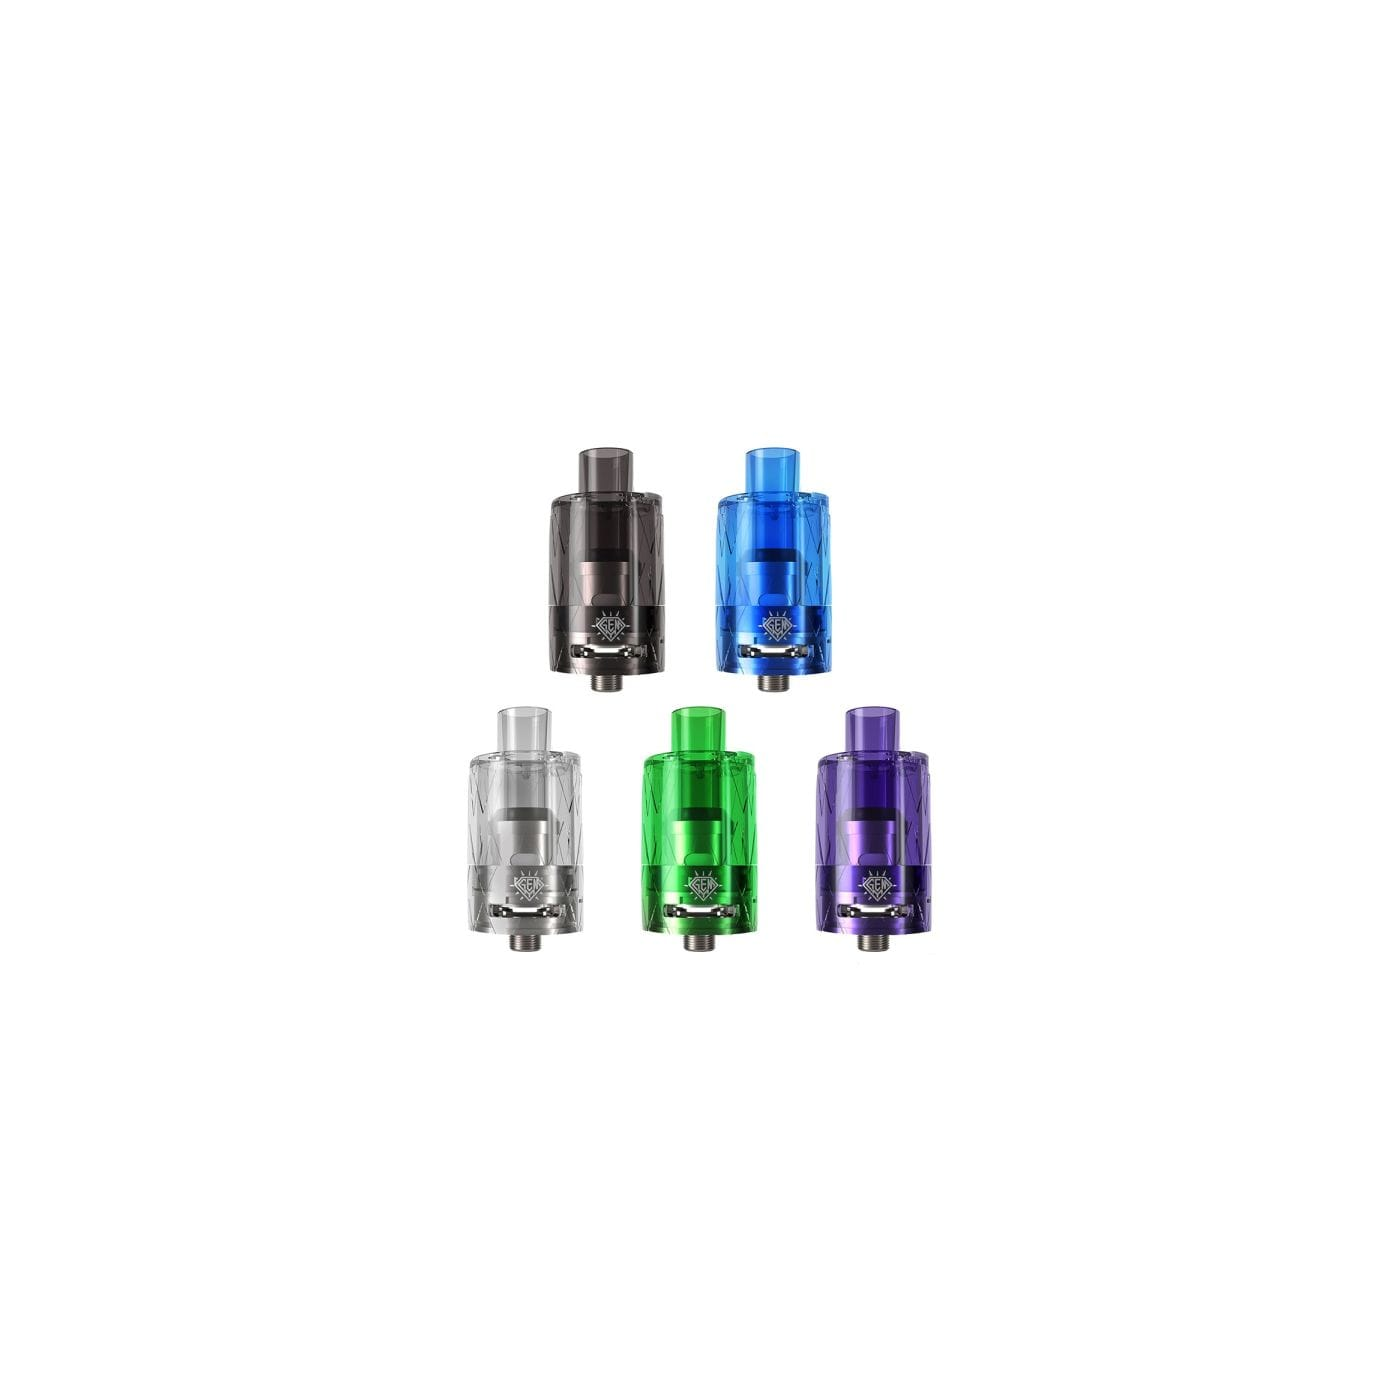 Freemax GEMM G4 Disposable Mesh Tank - 2 Pack